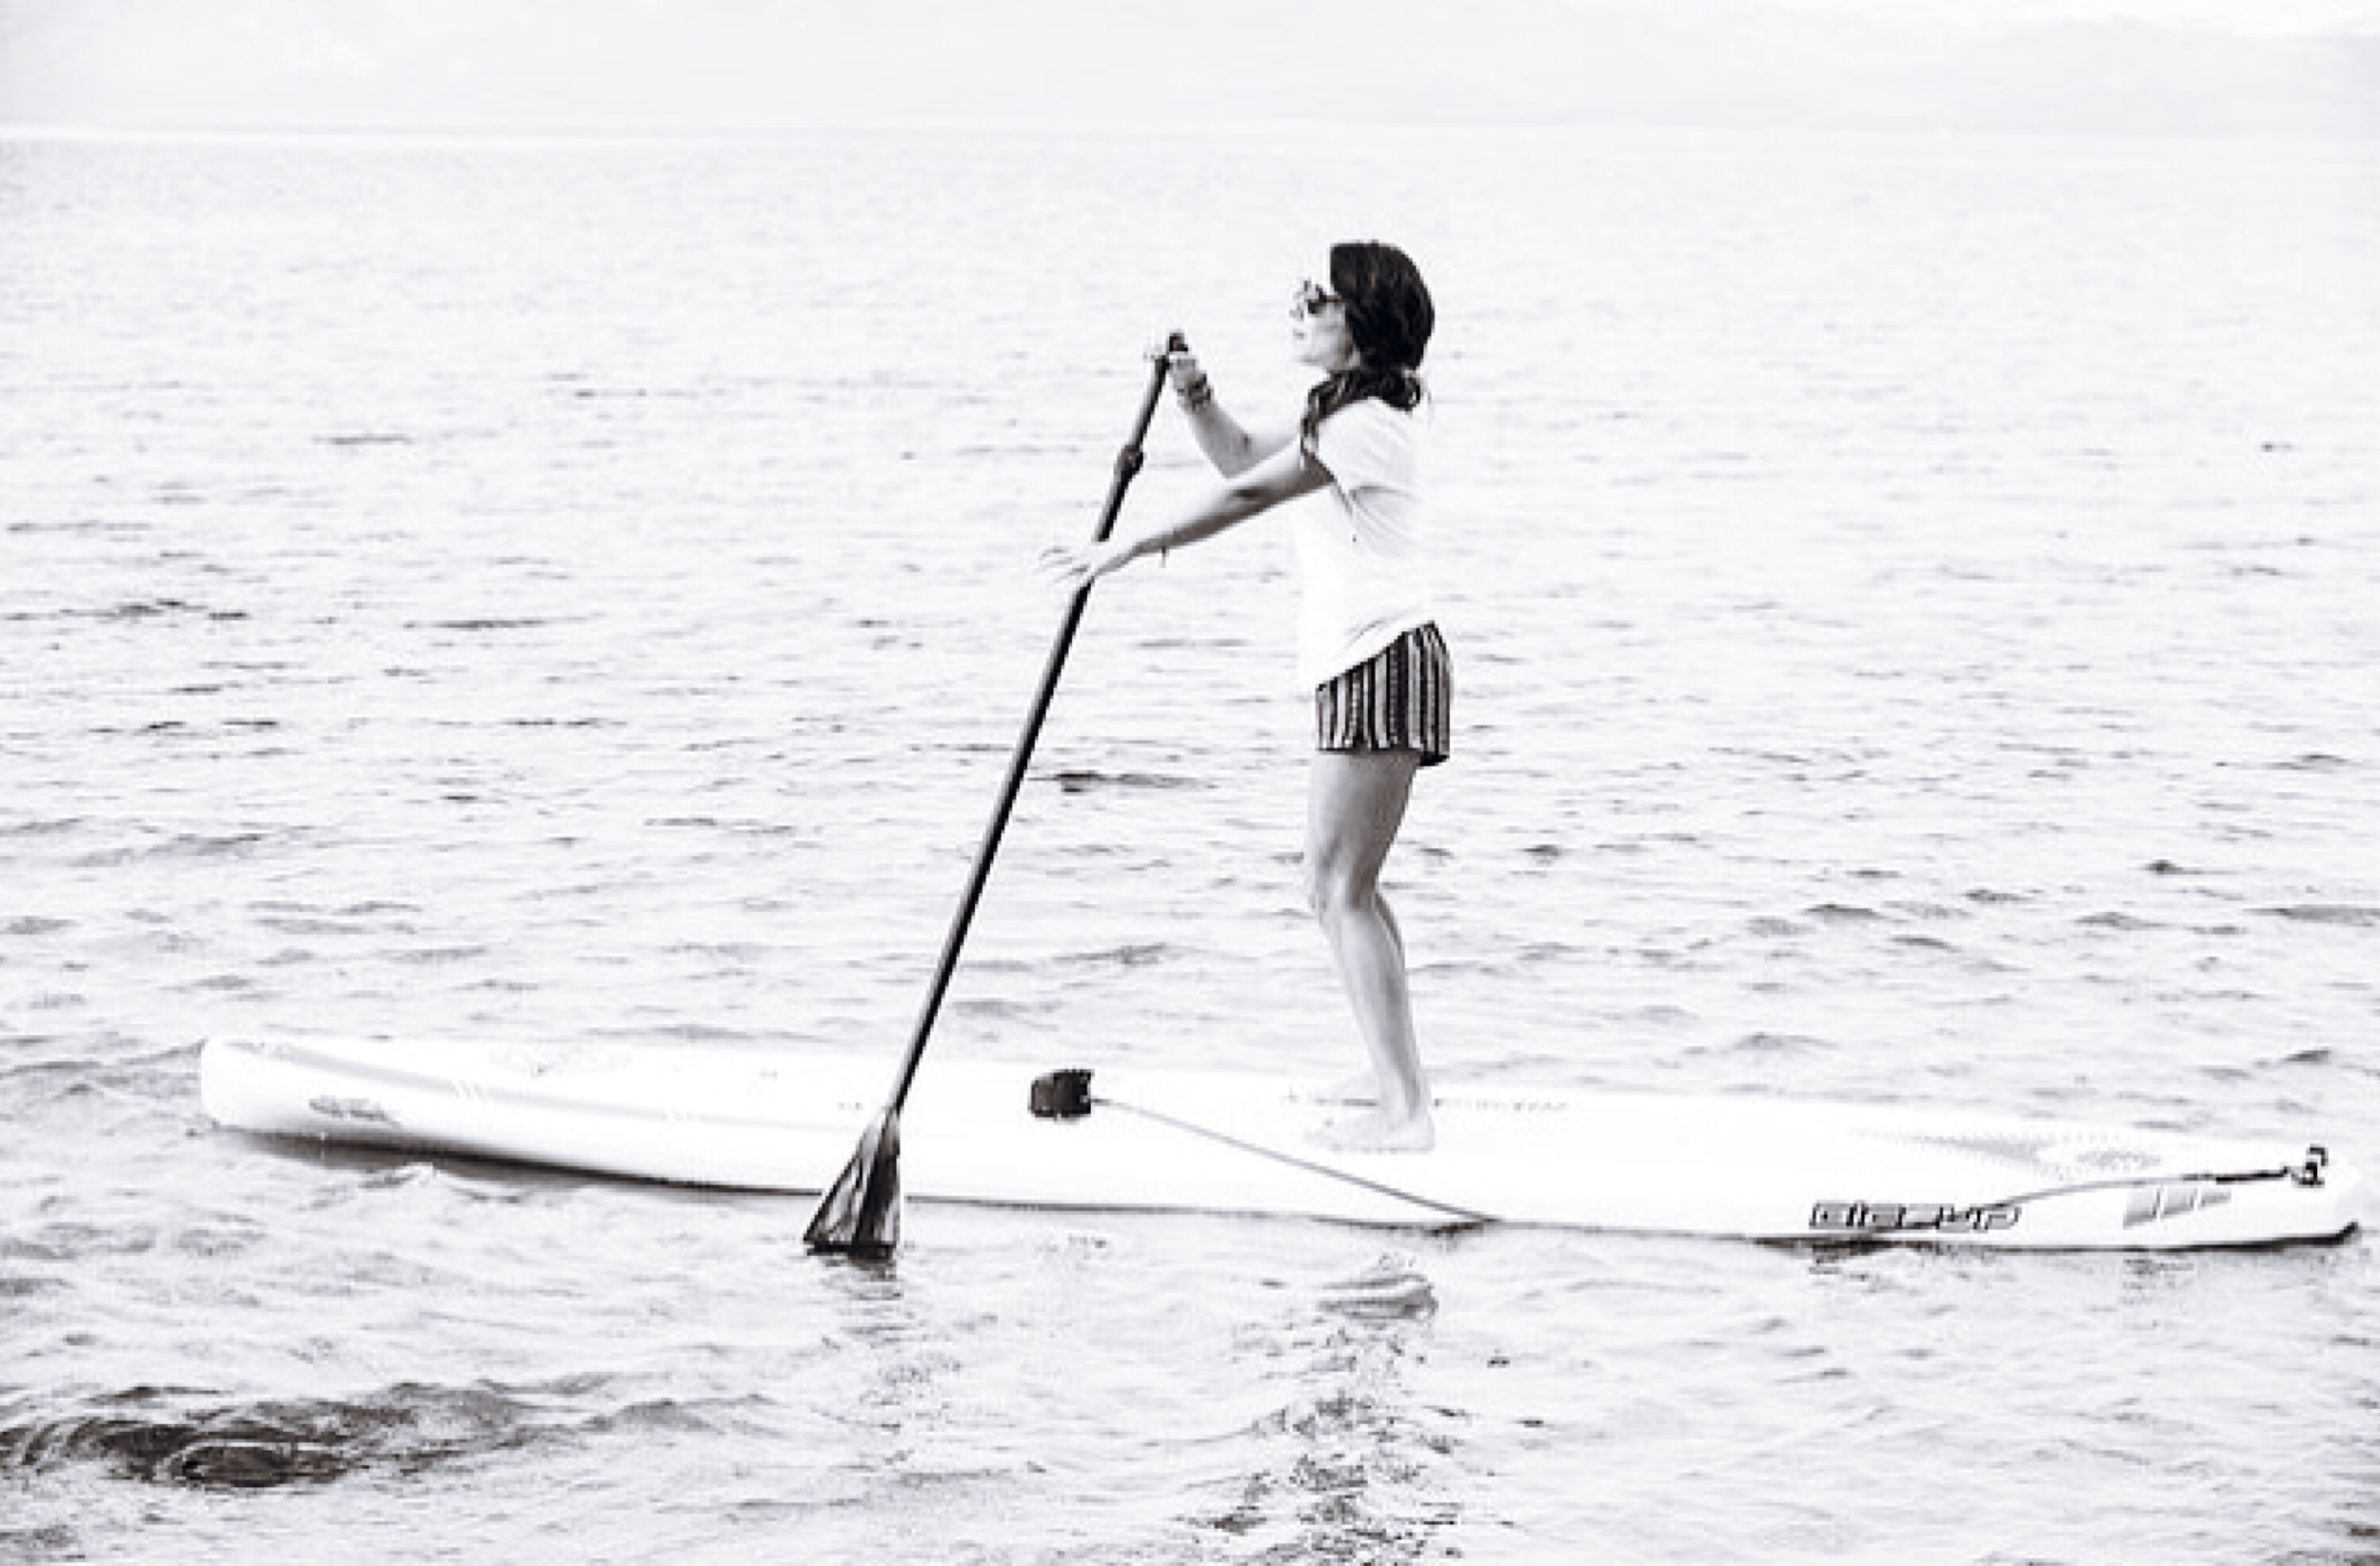 + Christi paddle boarding to our next location.